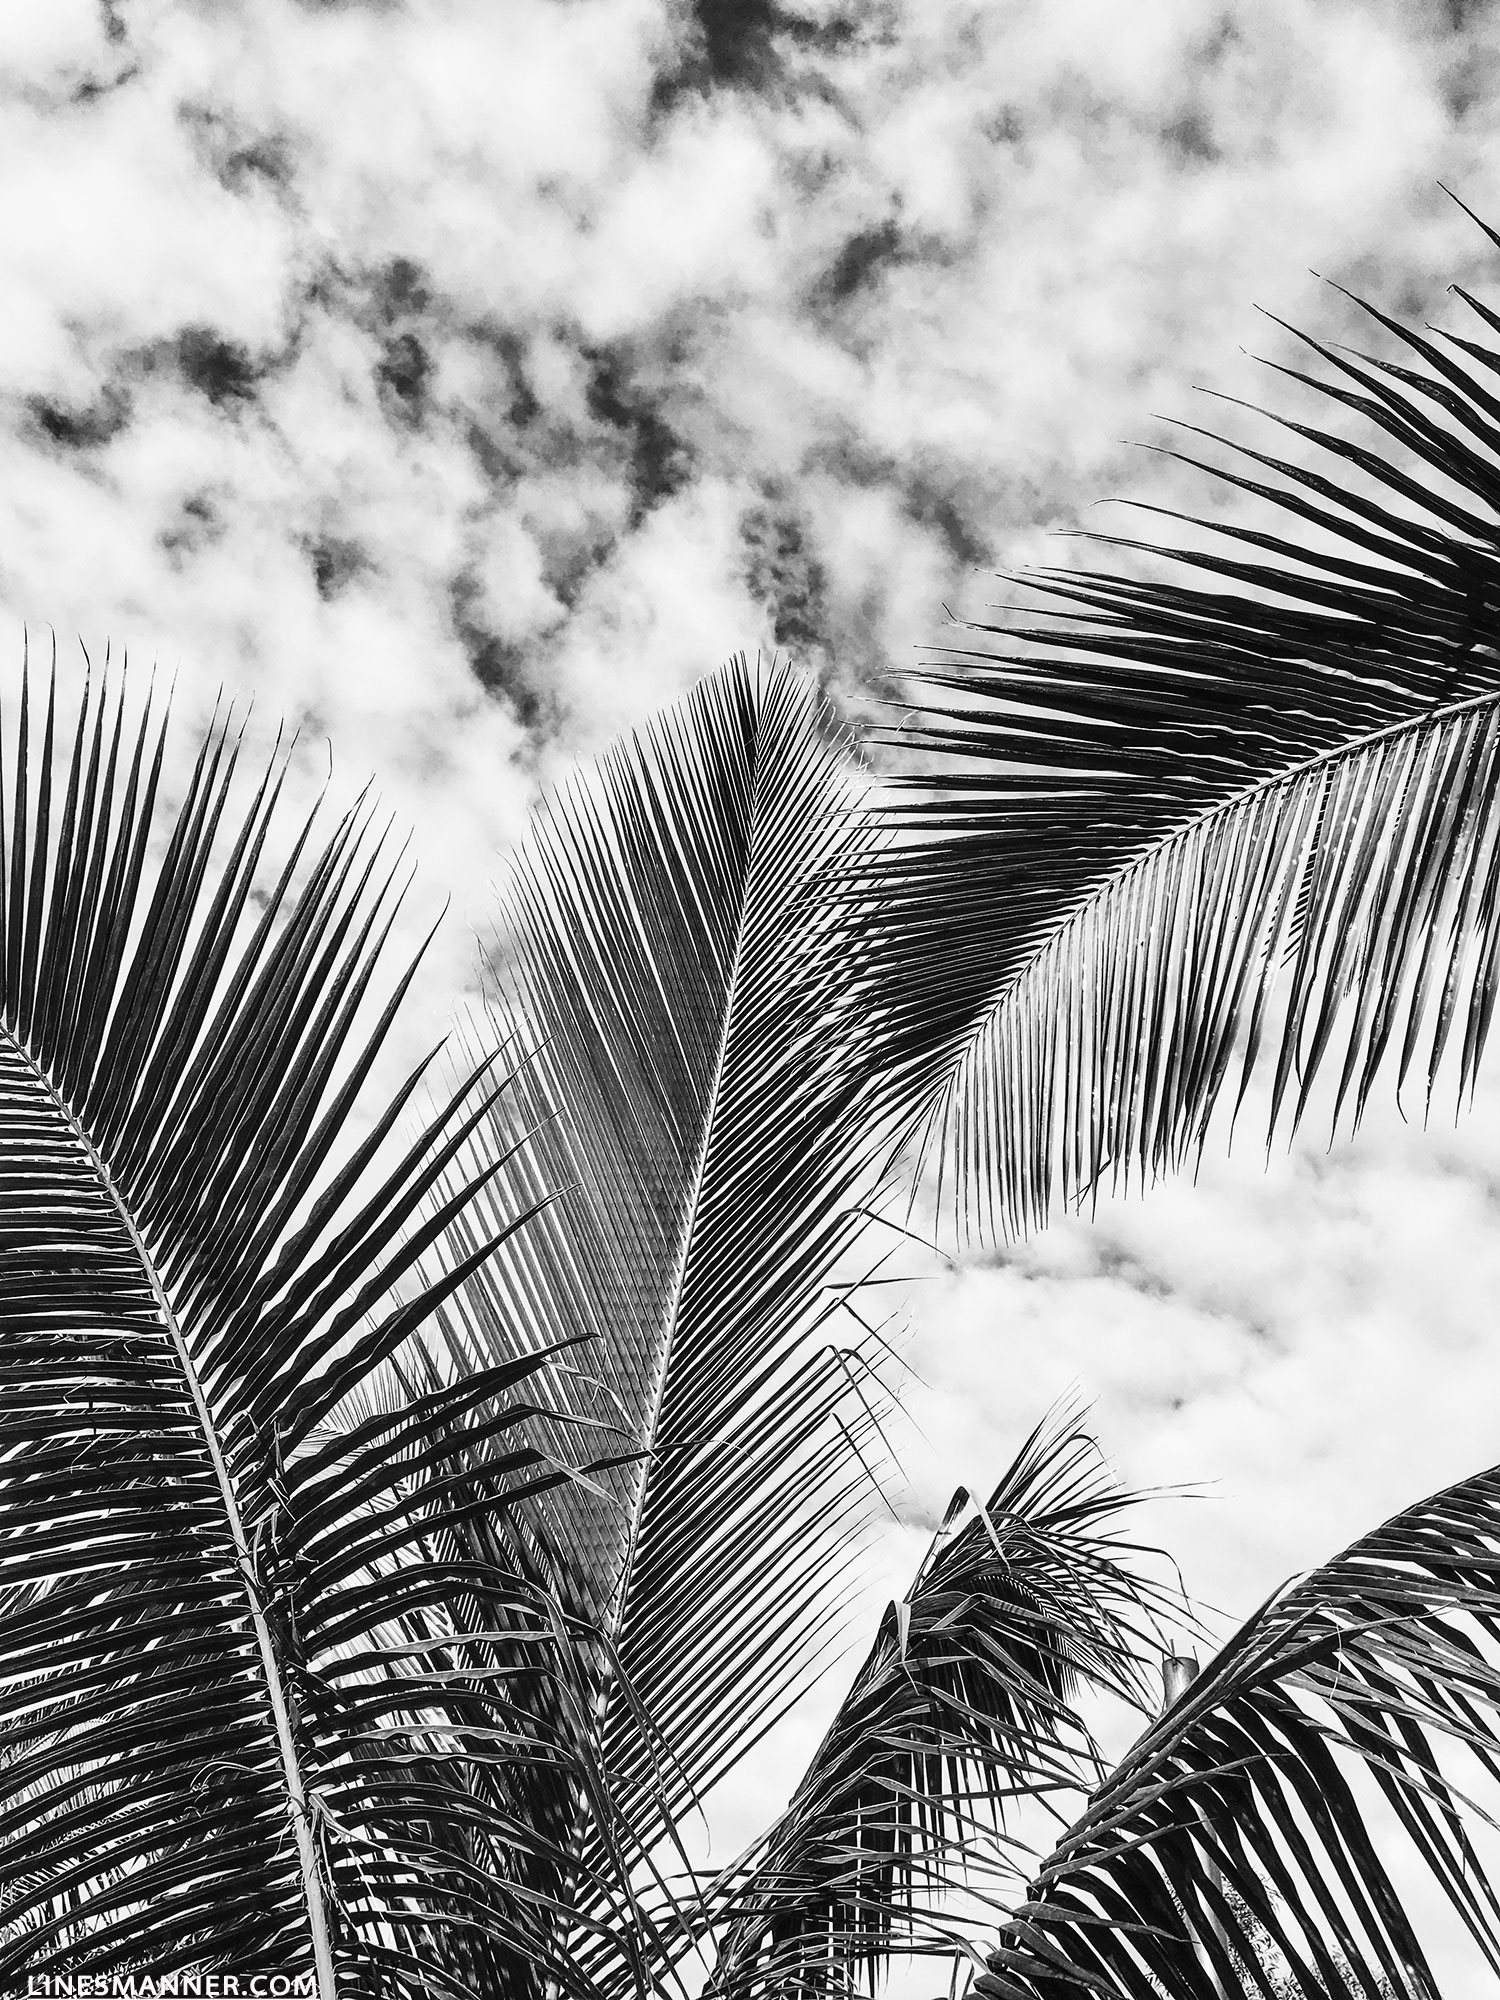 Lines-Manner-Explore-Travel-World-Places-Ocean-Madagascar-Island-Photography-Inspiration-Sea-Tropical-11